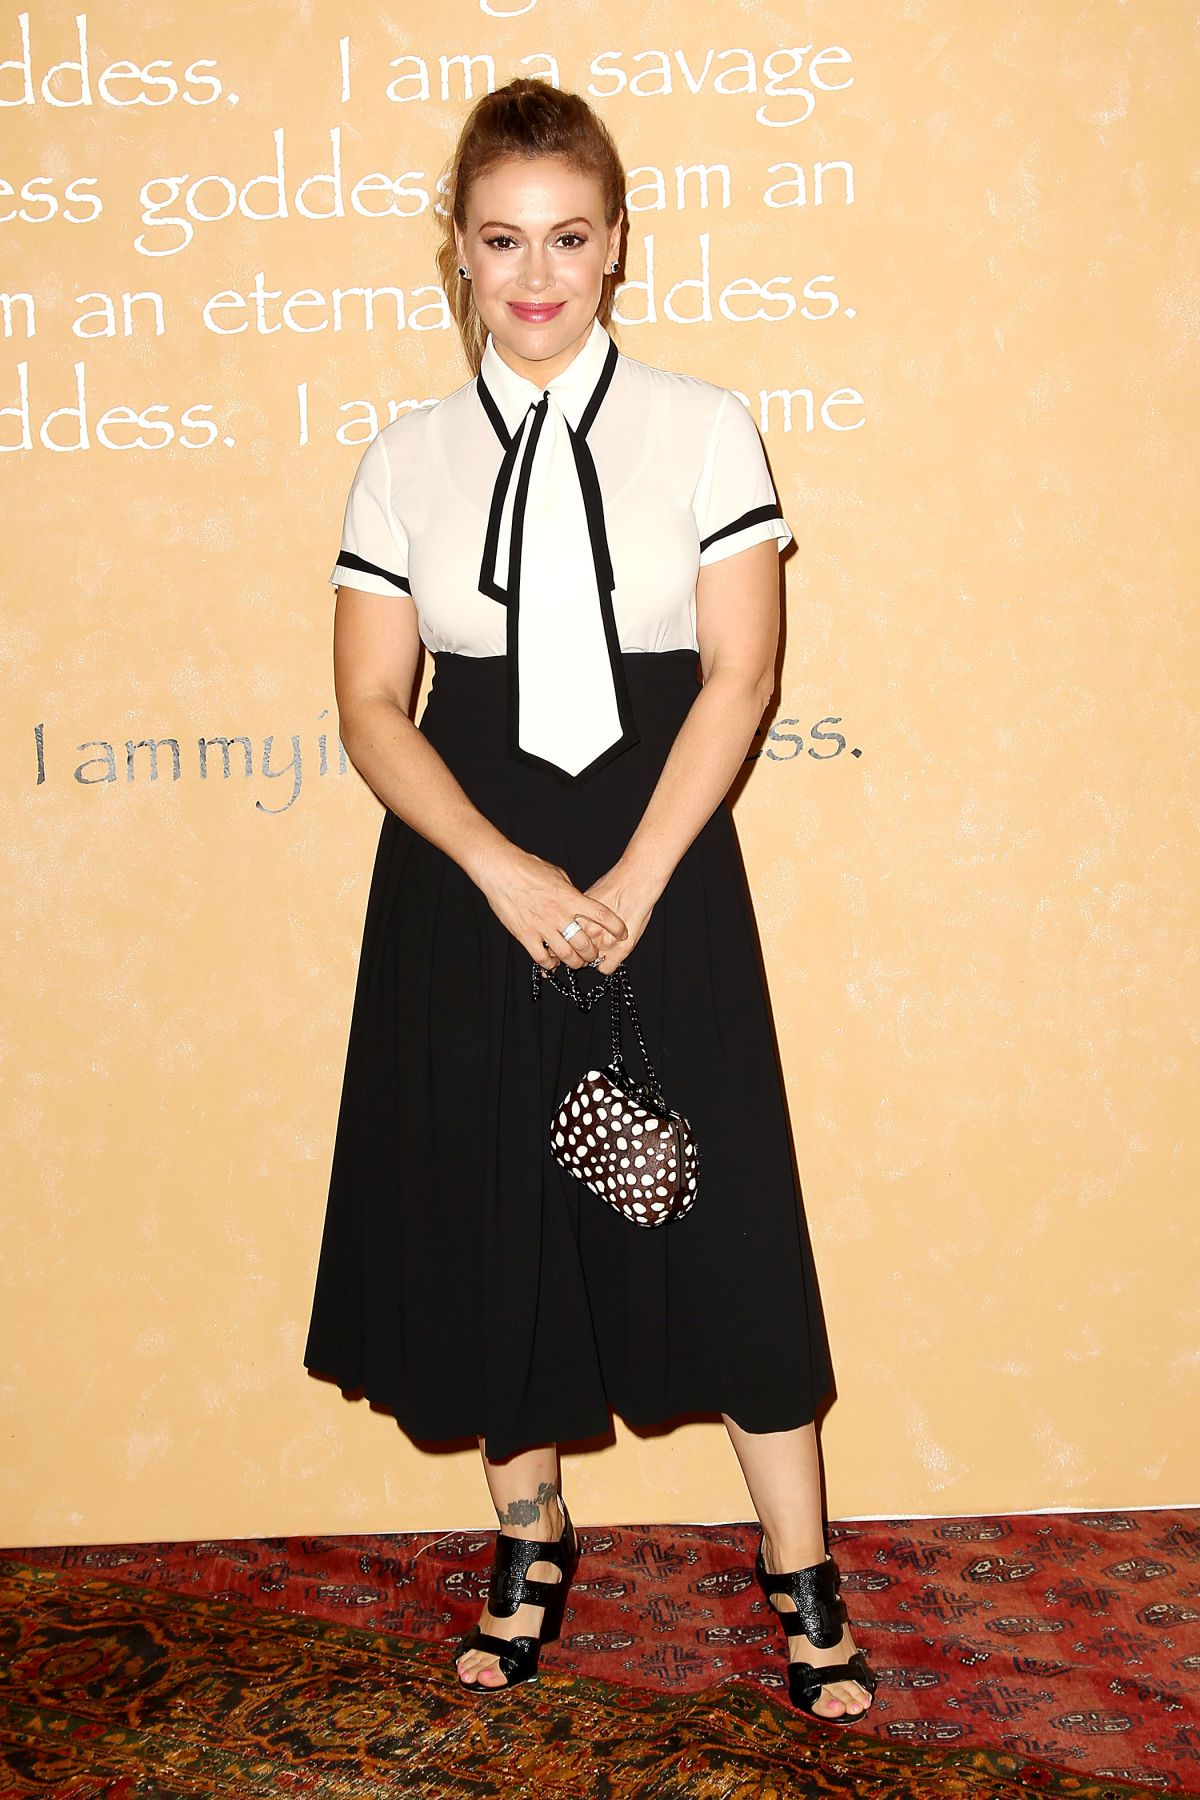 ALYSSA MILANO at Alice + Olivia by Stacey Bendet Fashion Show at New York Fashion Week 09/15/2015